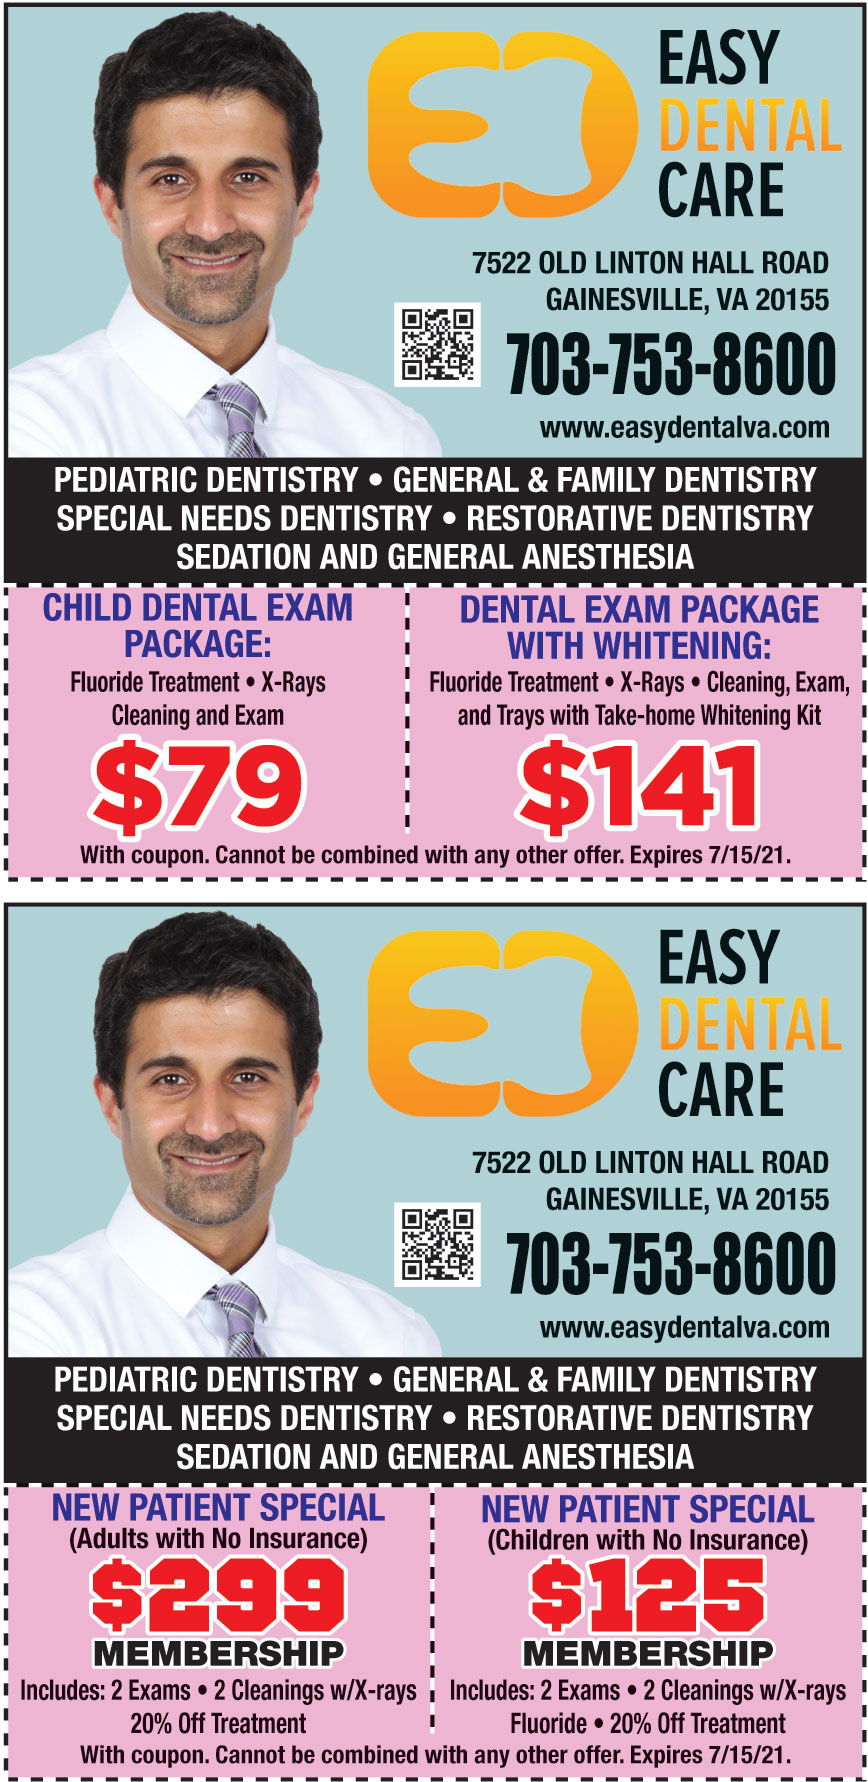 EASY DENTAL CARE